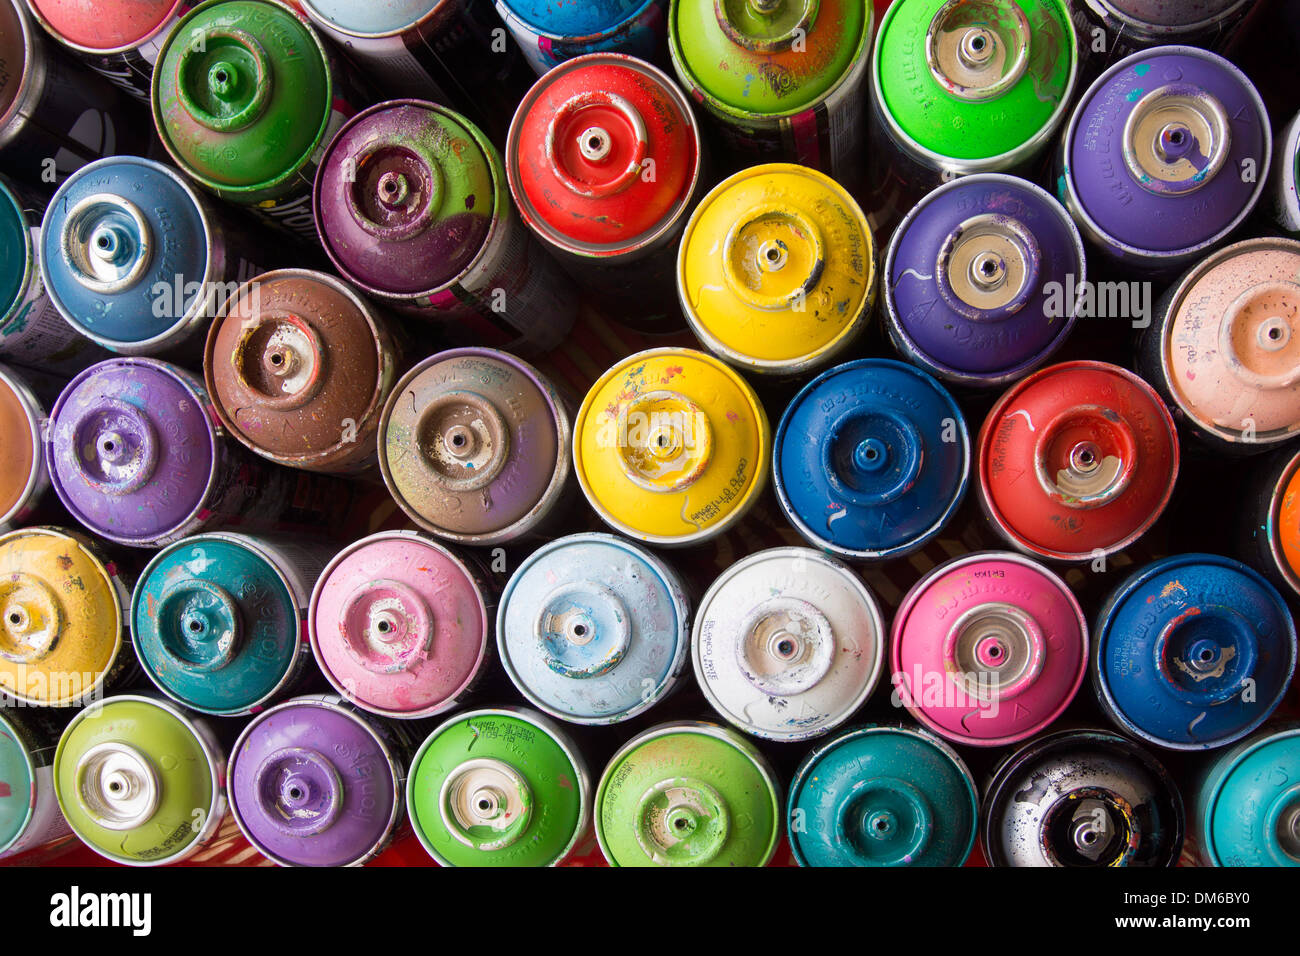 Coloured spray paint cans - Stock Image